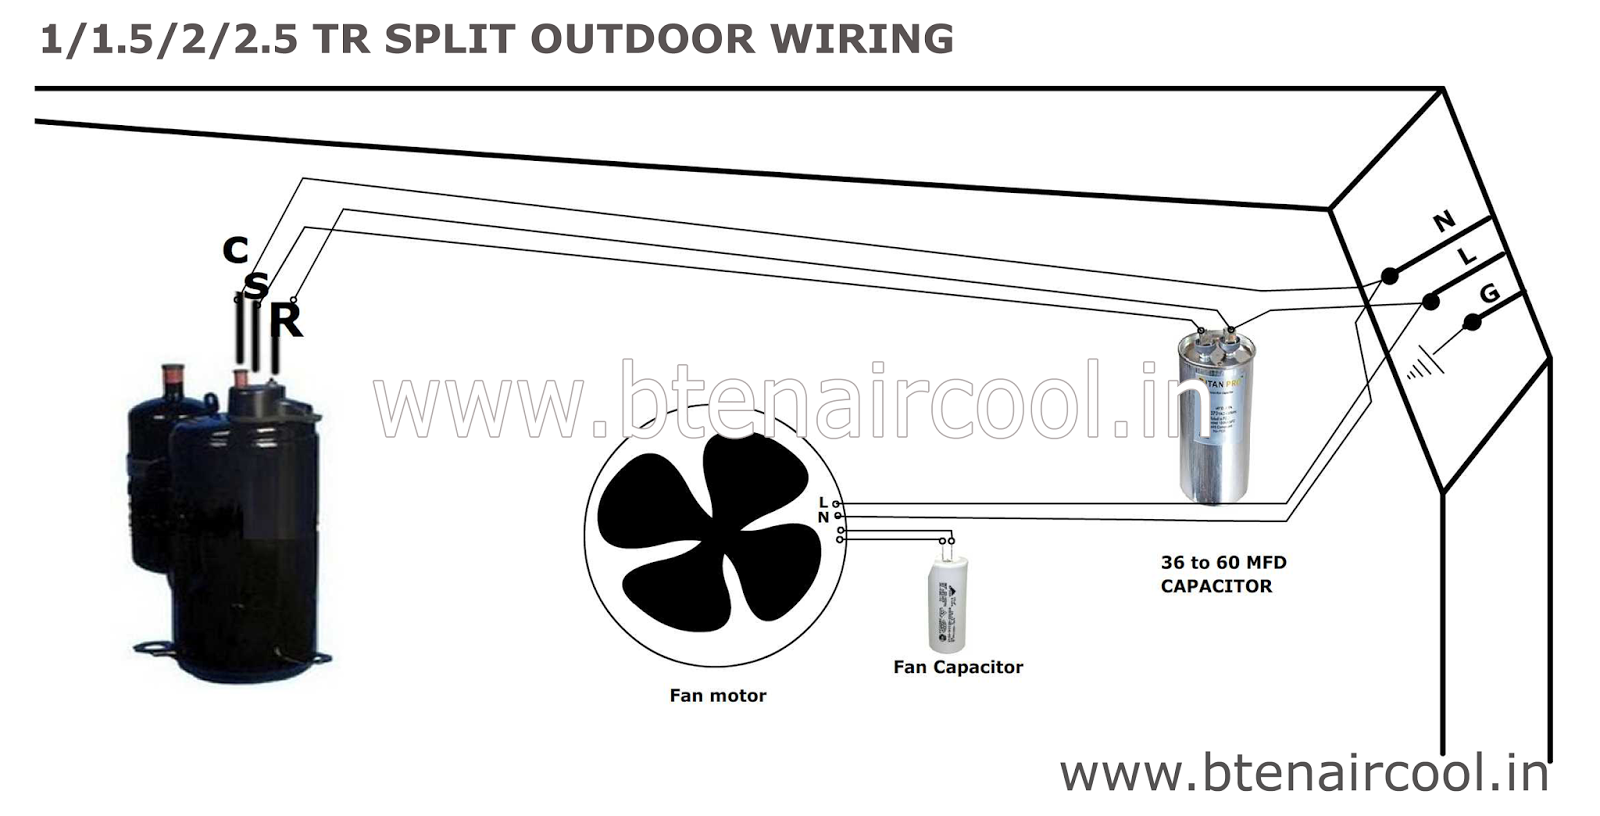 Outdoor Wiring Diagram Bten Aircool